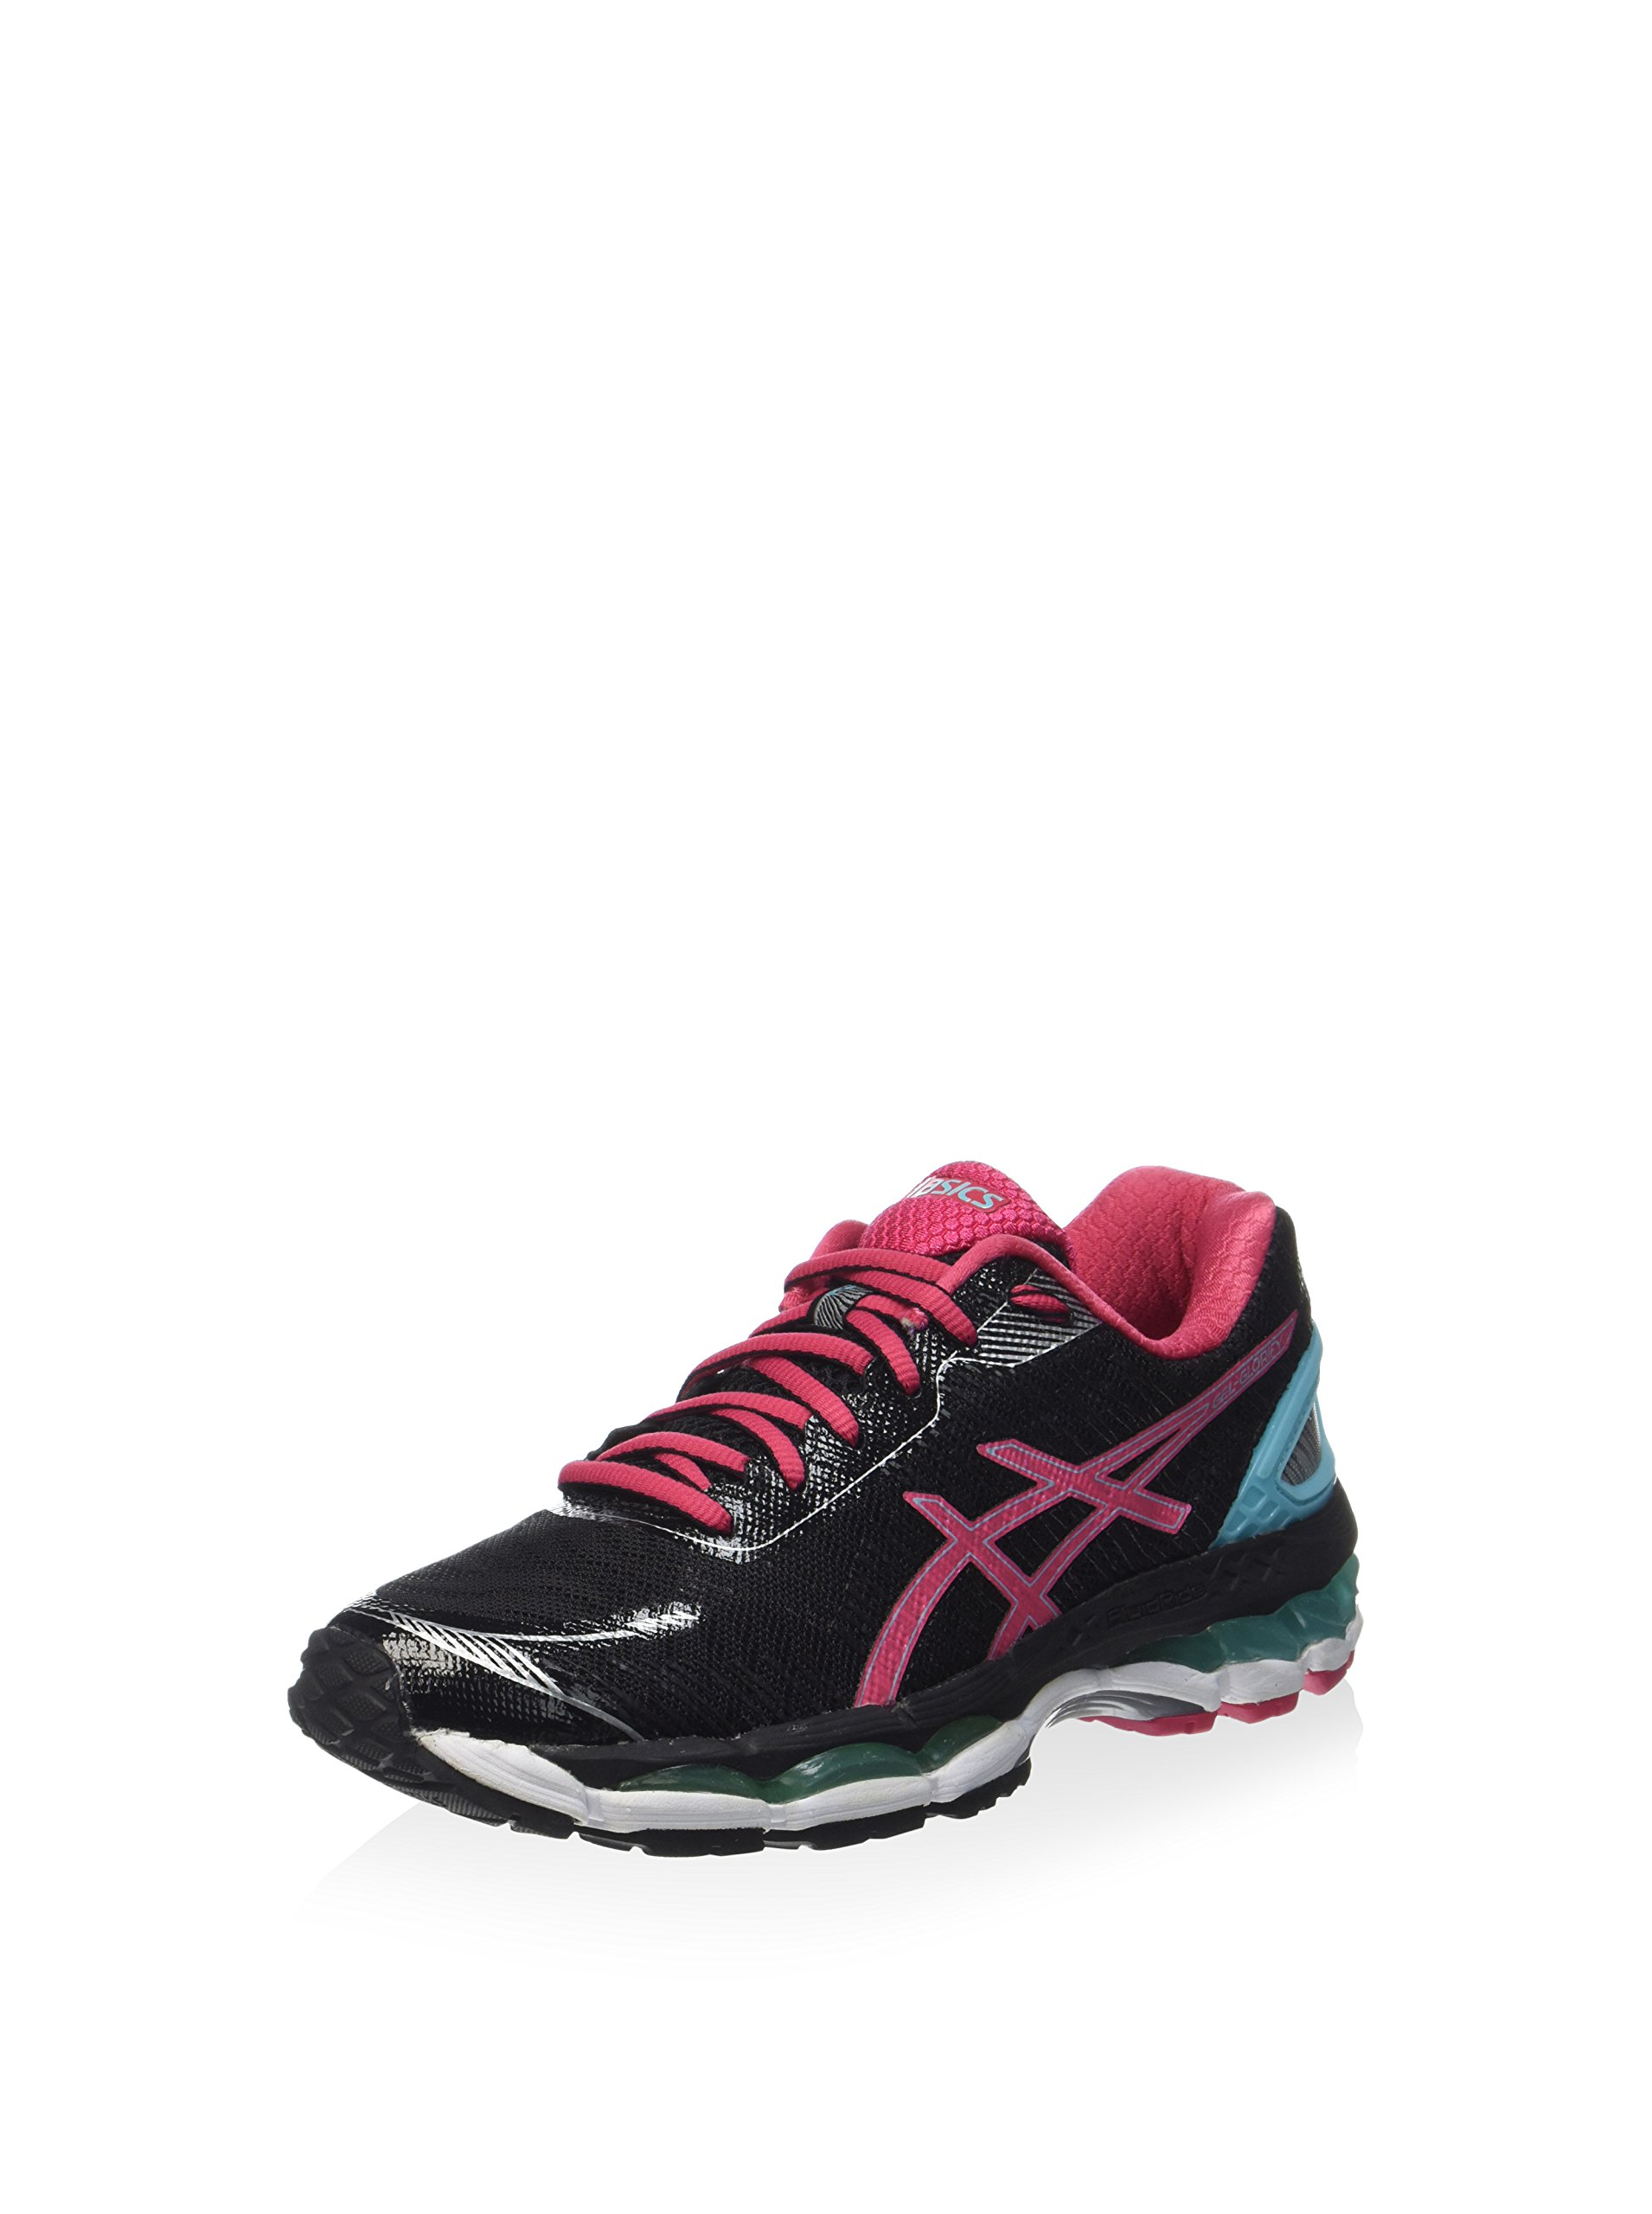 Profesor Elástico Luminancia  ASICS Gel-Glorify 2, Women's Low-Top Sneakers - Buy Online in Guernsey.    asics Products in Guernsey - See Prices, Reviews and Free Delivery over  £50.00   Desertcart